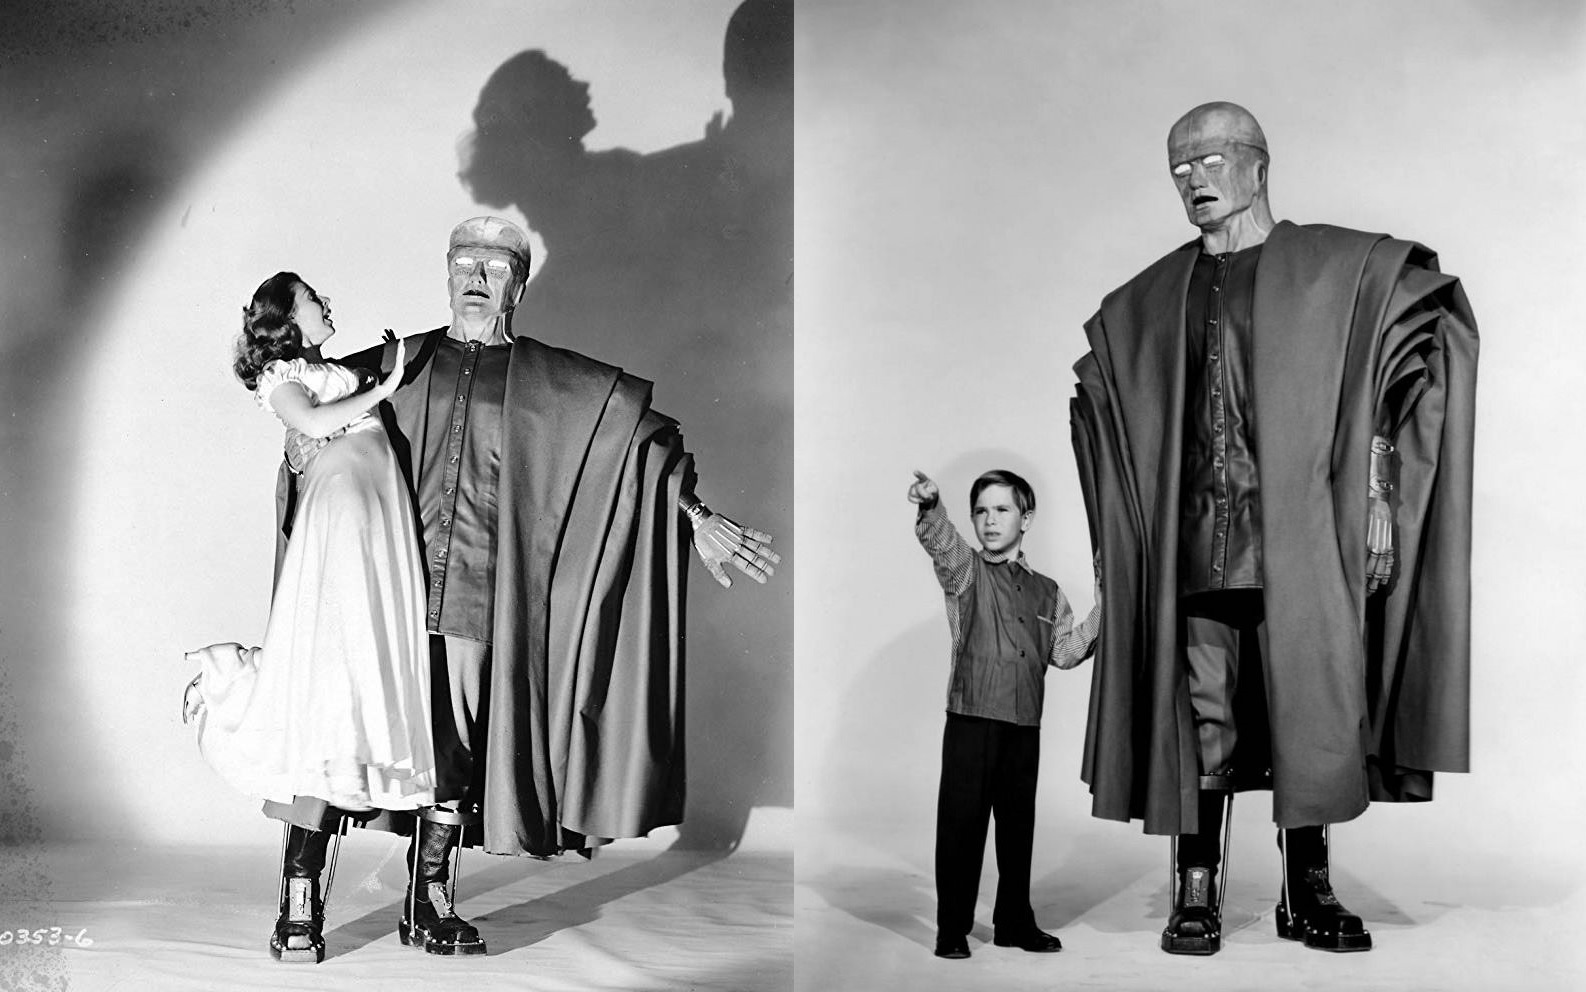 The Colossus abducts Mala Powers; The Colossus befriends young Billy (Charles Herbert)The Colossus abducts Mala Powers; The Colossus befriends young Billy (Charles Herbert) in The Colossus of New York (1958)